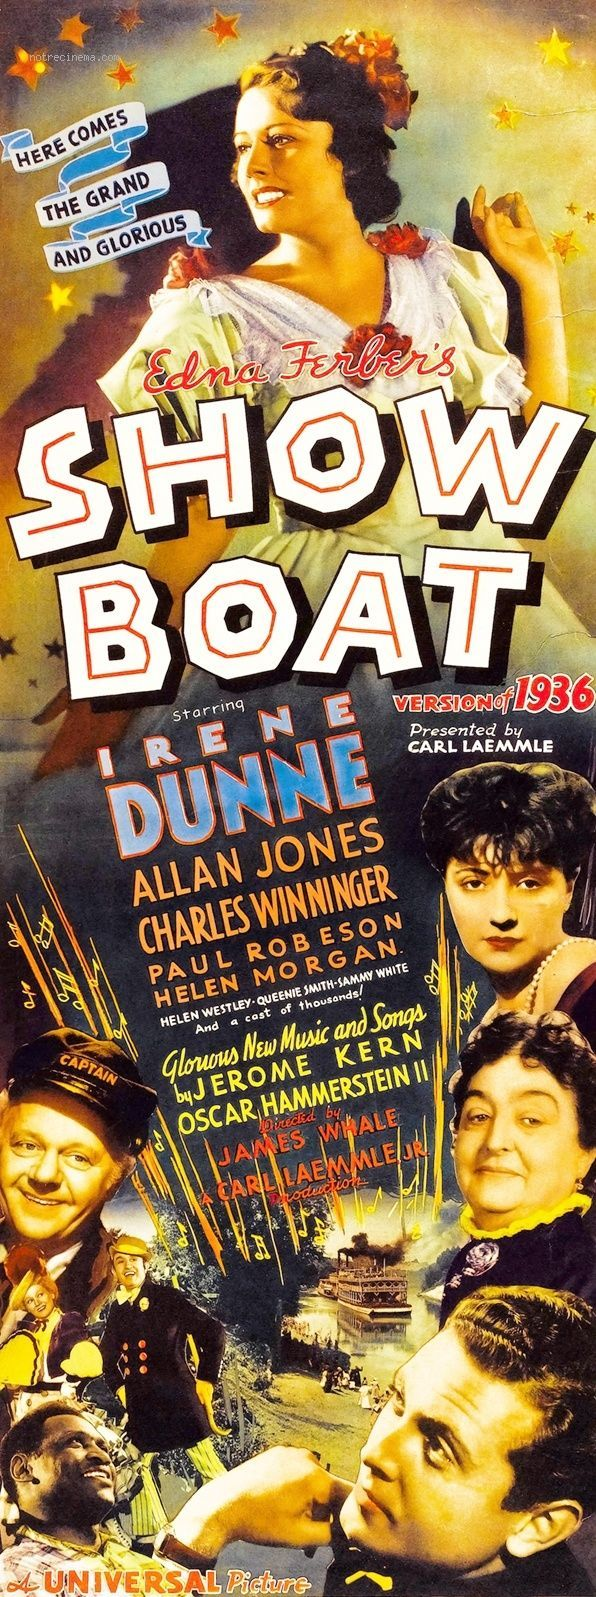 Paul Robeson's version of Old Man River remains the definitive one. Kudos as well to director James Whale